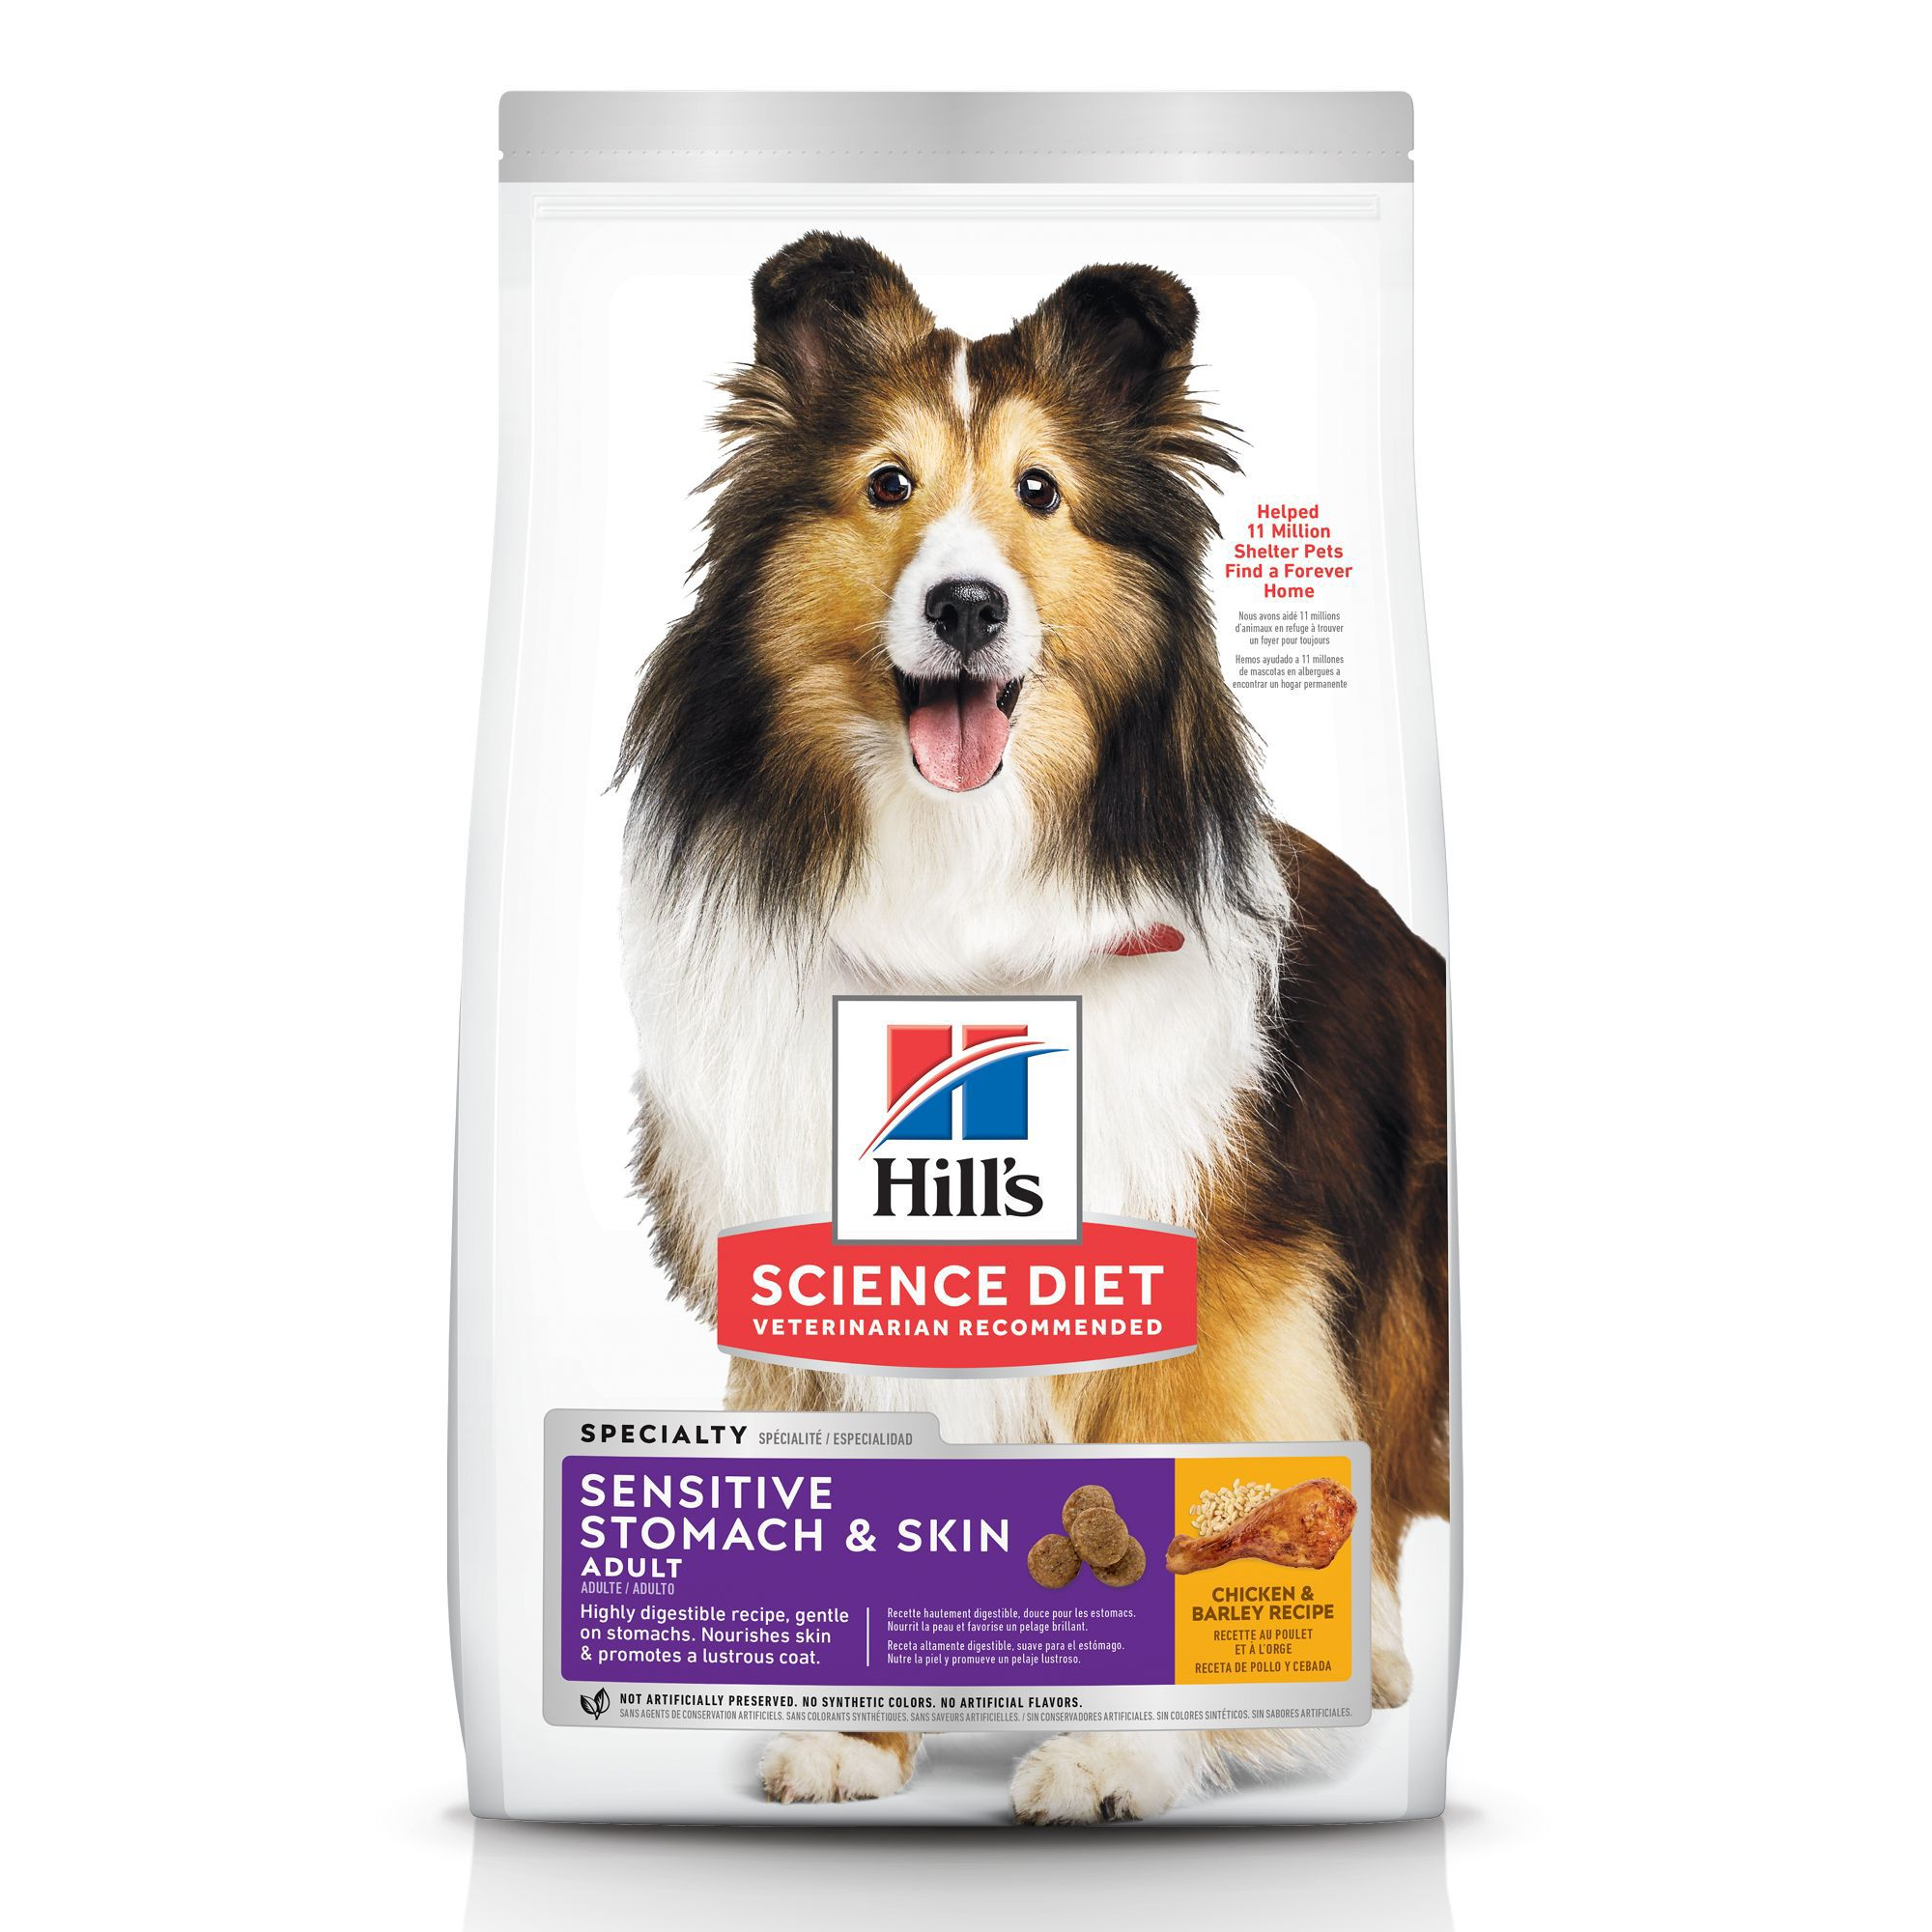 Hill's Science Diet Adult Sensitive Skin Dog Food Review